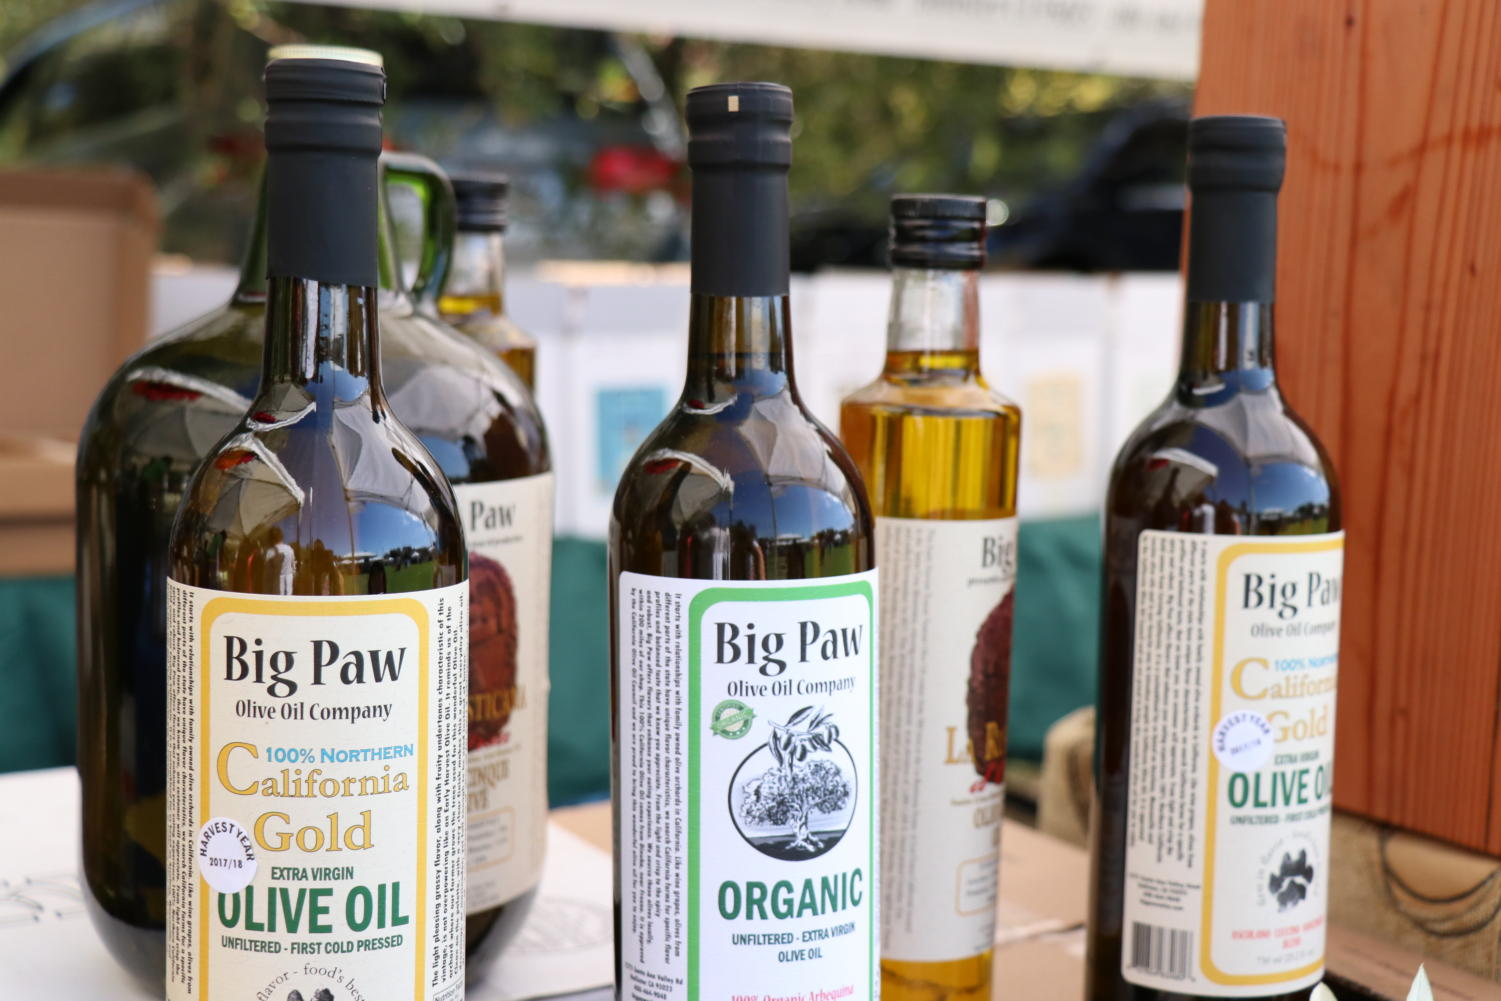 Vendors sell olive oil at Olive Festival in Fremont.